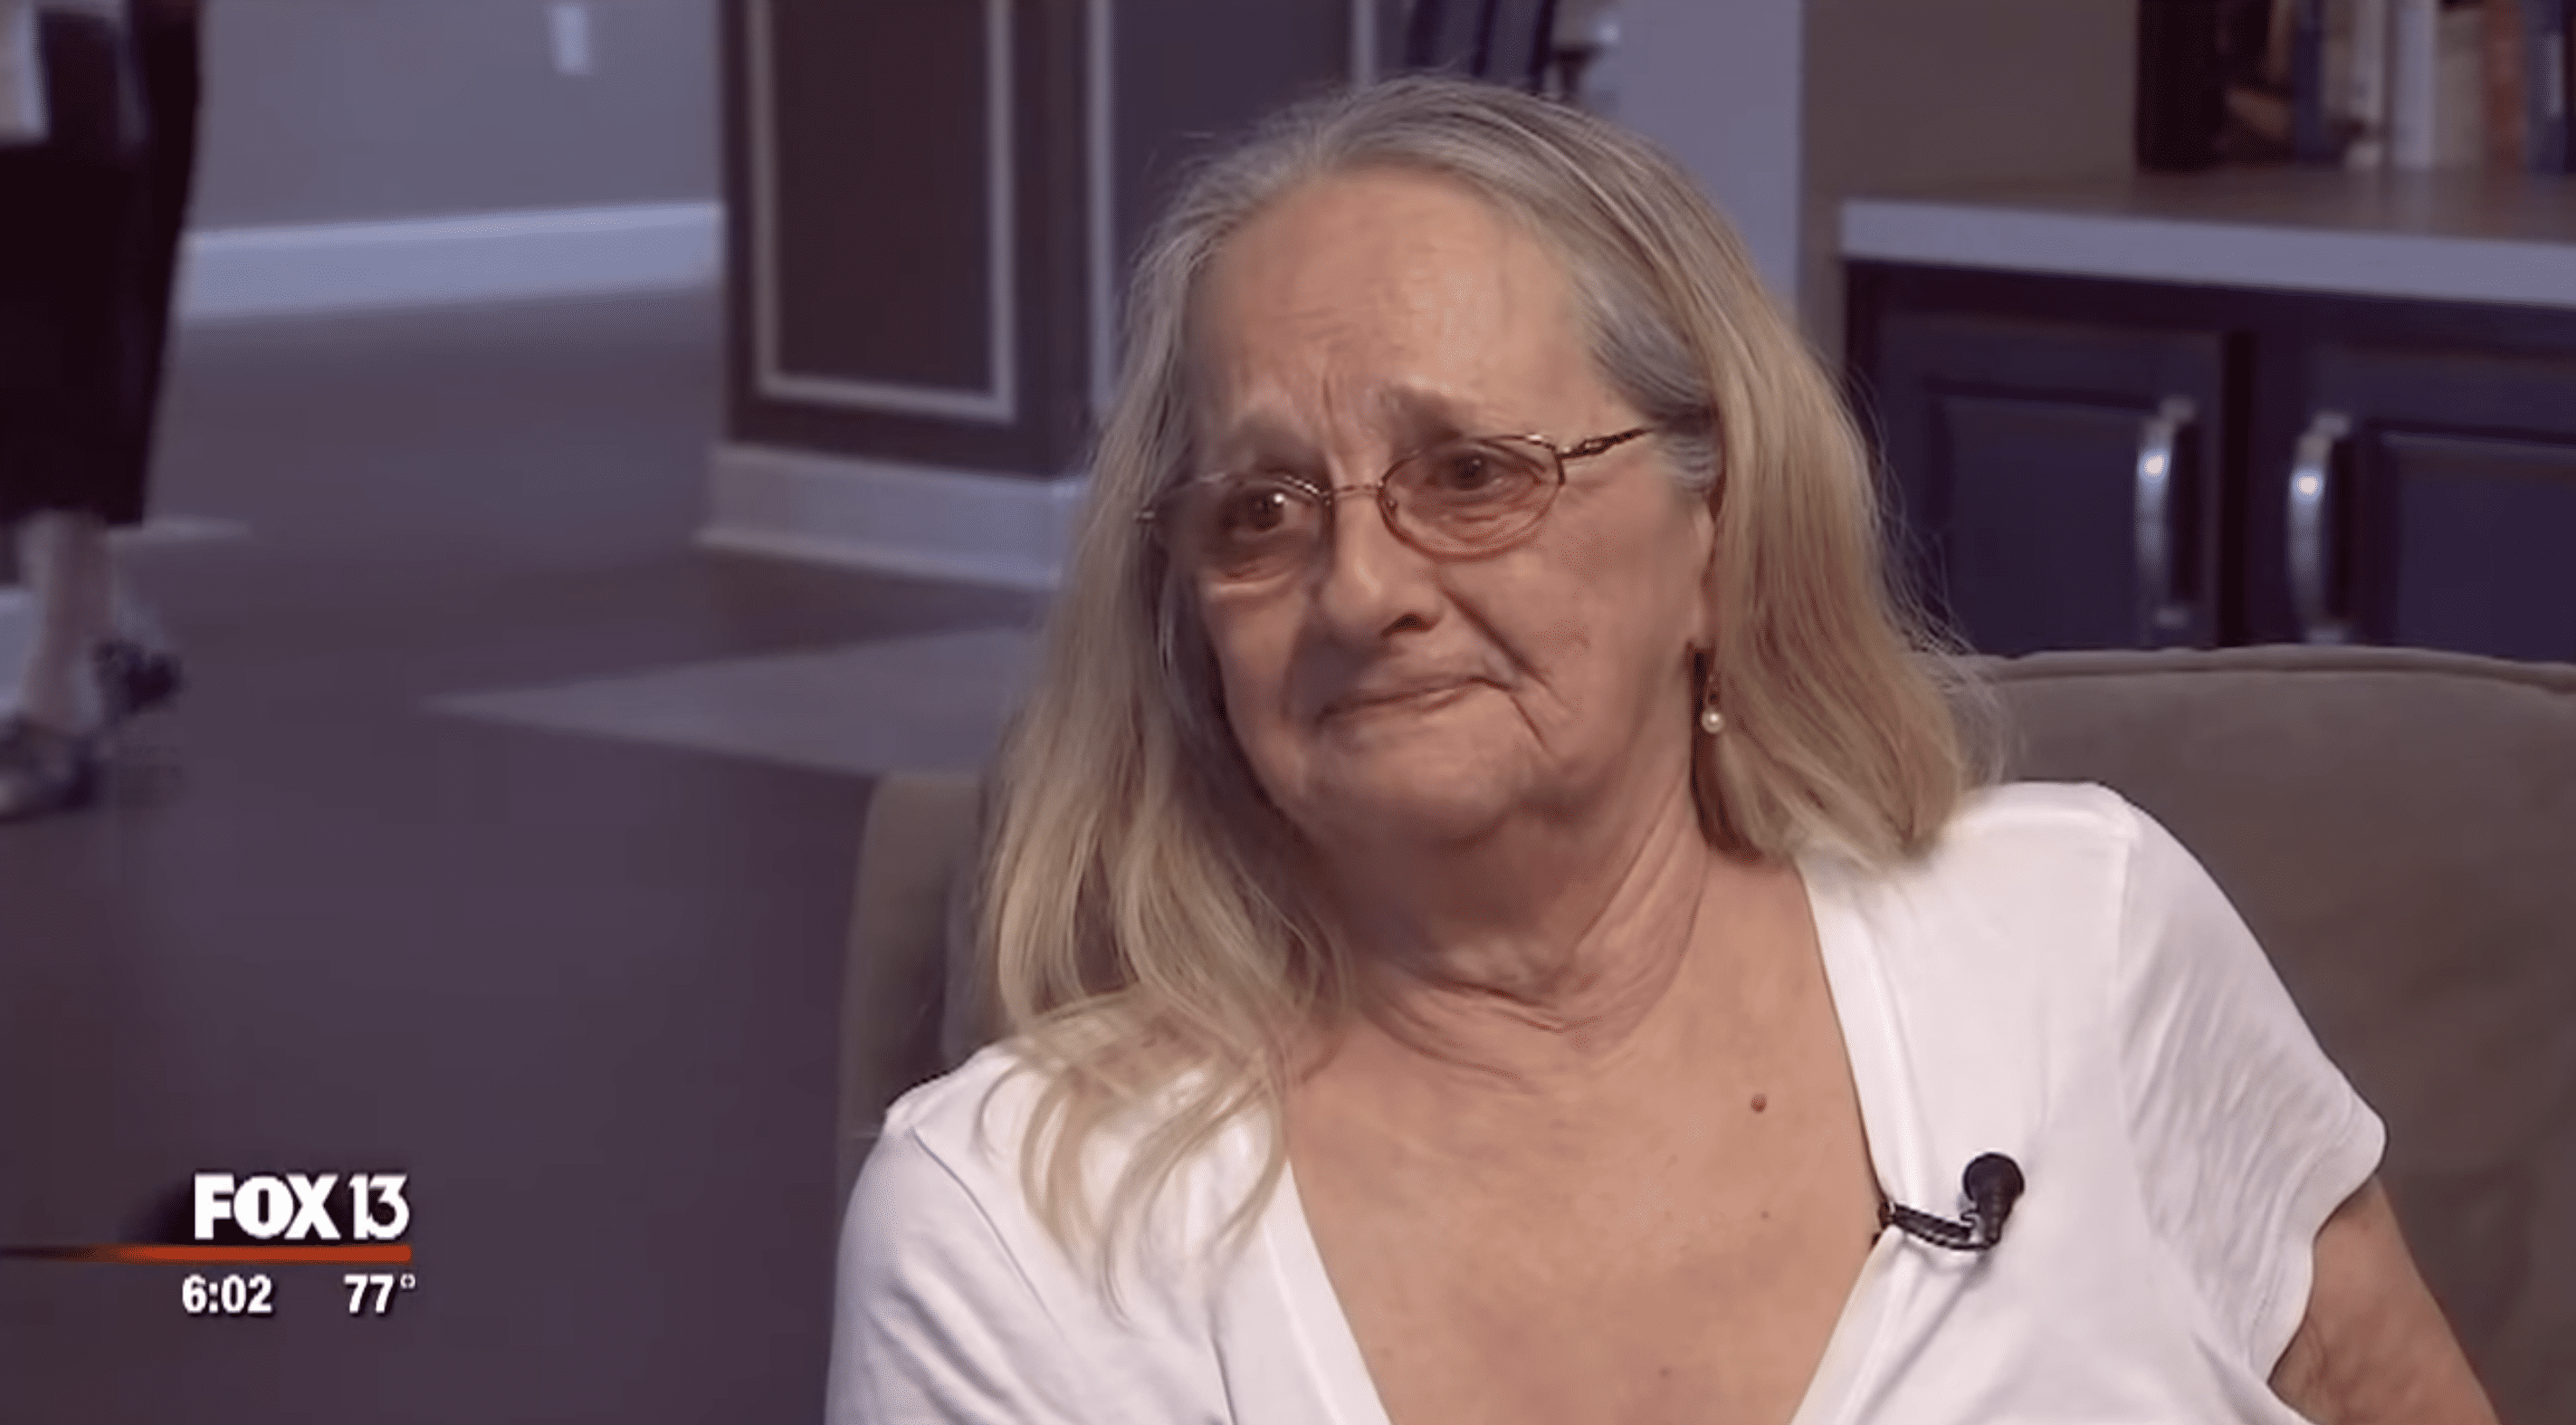 Connie Moultroup shared that the DNA kit helped her find her birth mom. | Photo: youtube.com/FOX 13 Tampa Bay